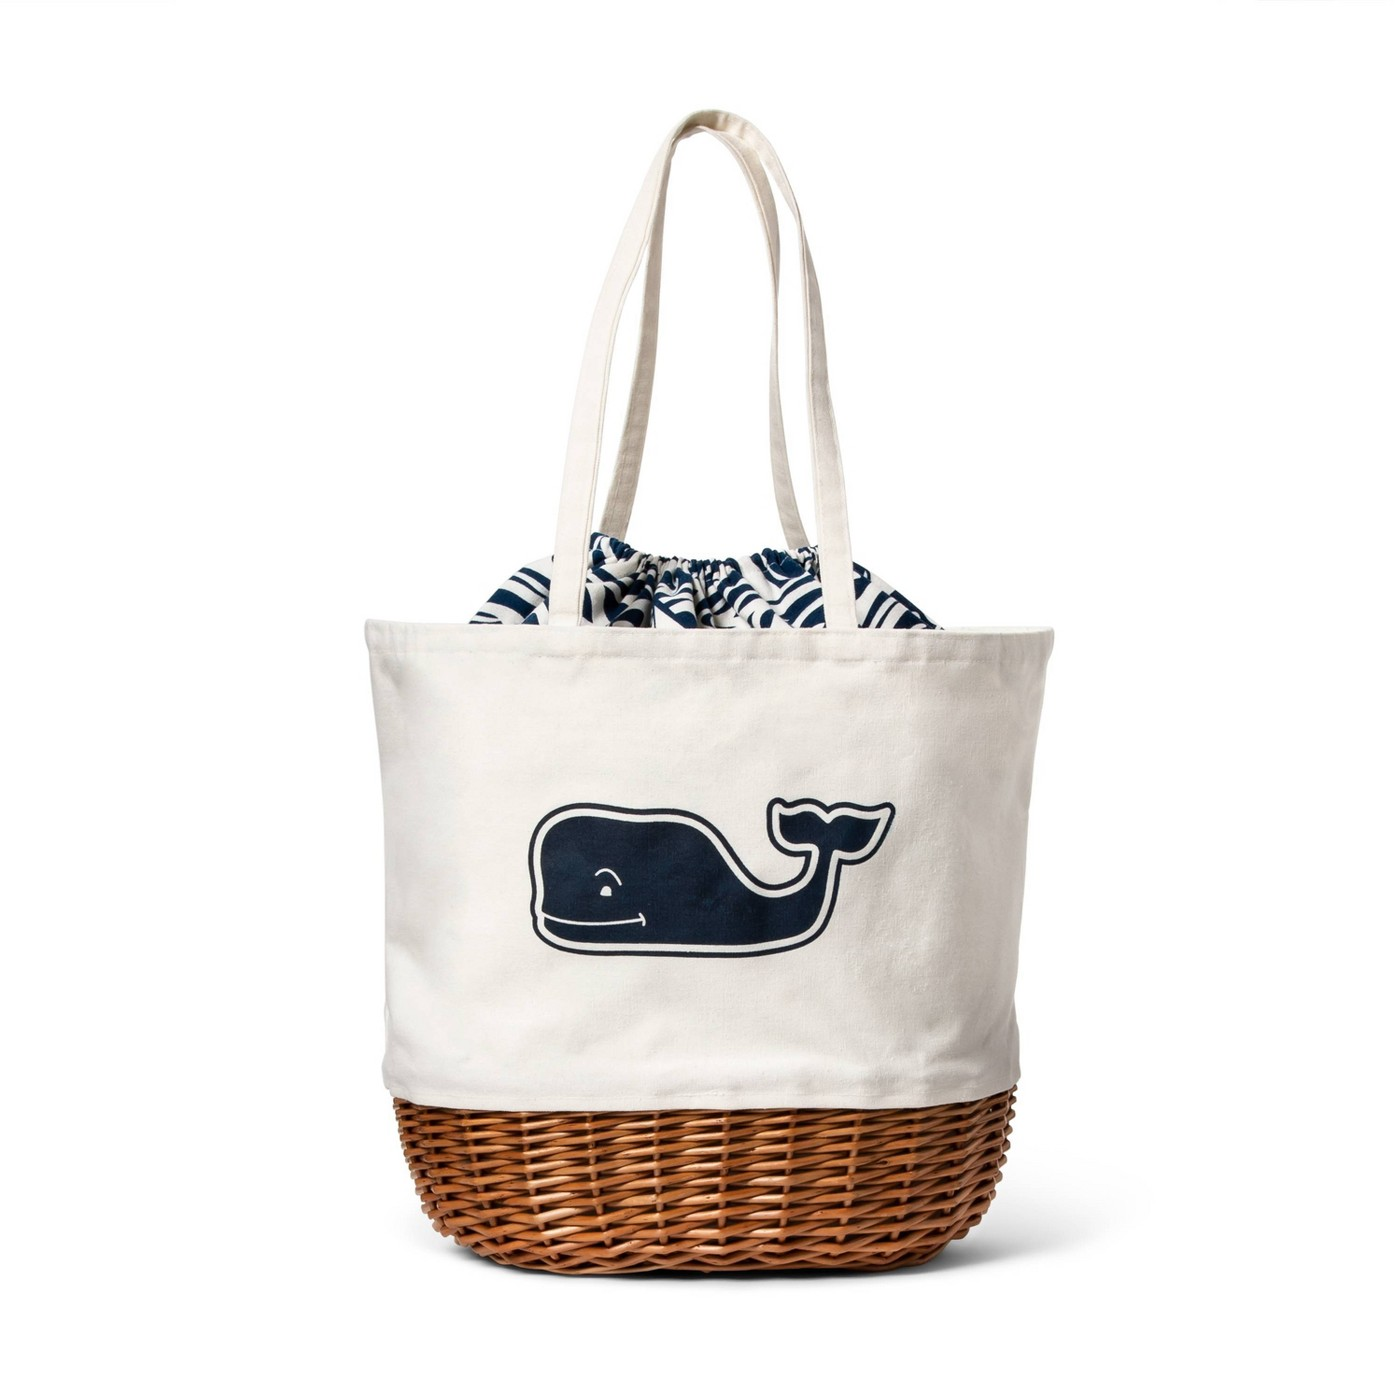 Whale Picnic Tote with Rough Seas Lining - Navy/White - vineyard vines® for Target - image 1 of 5